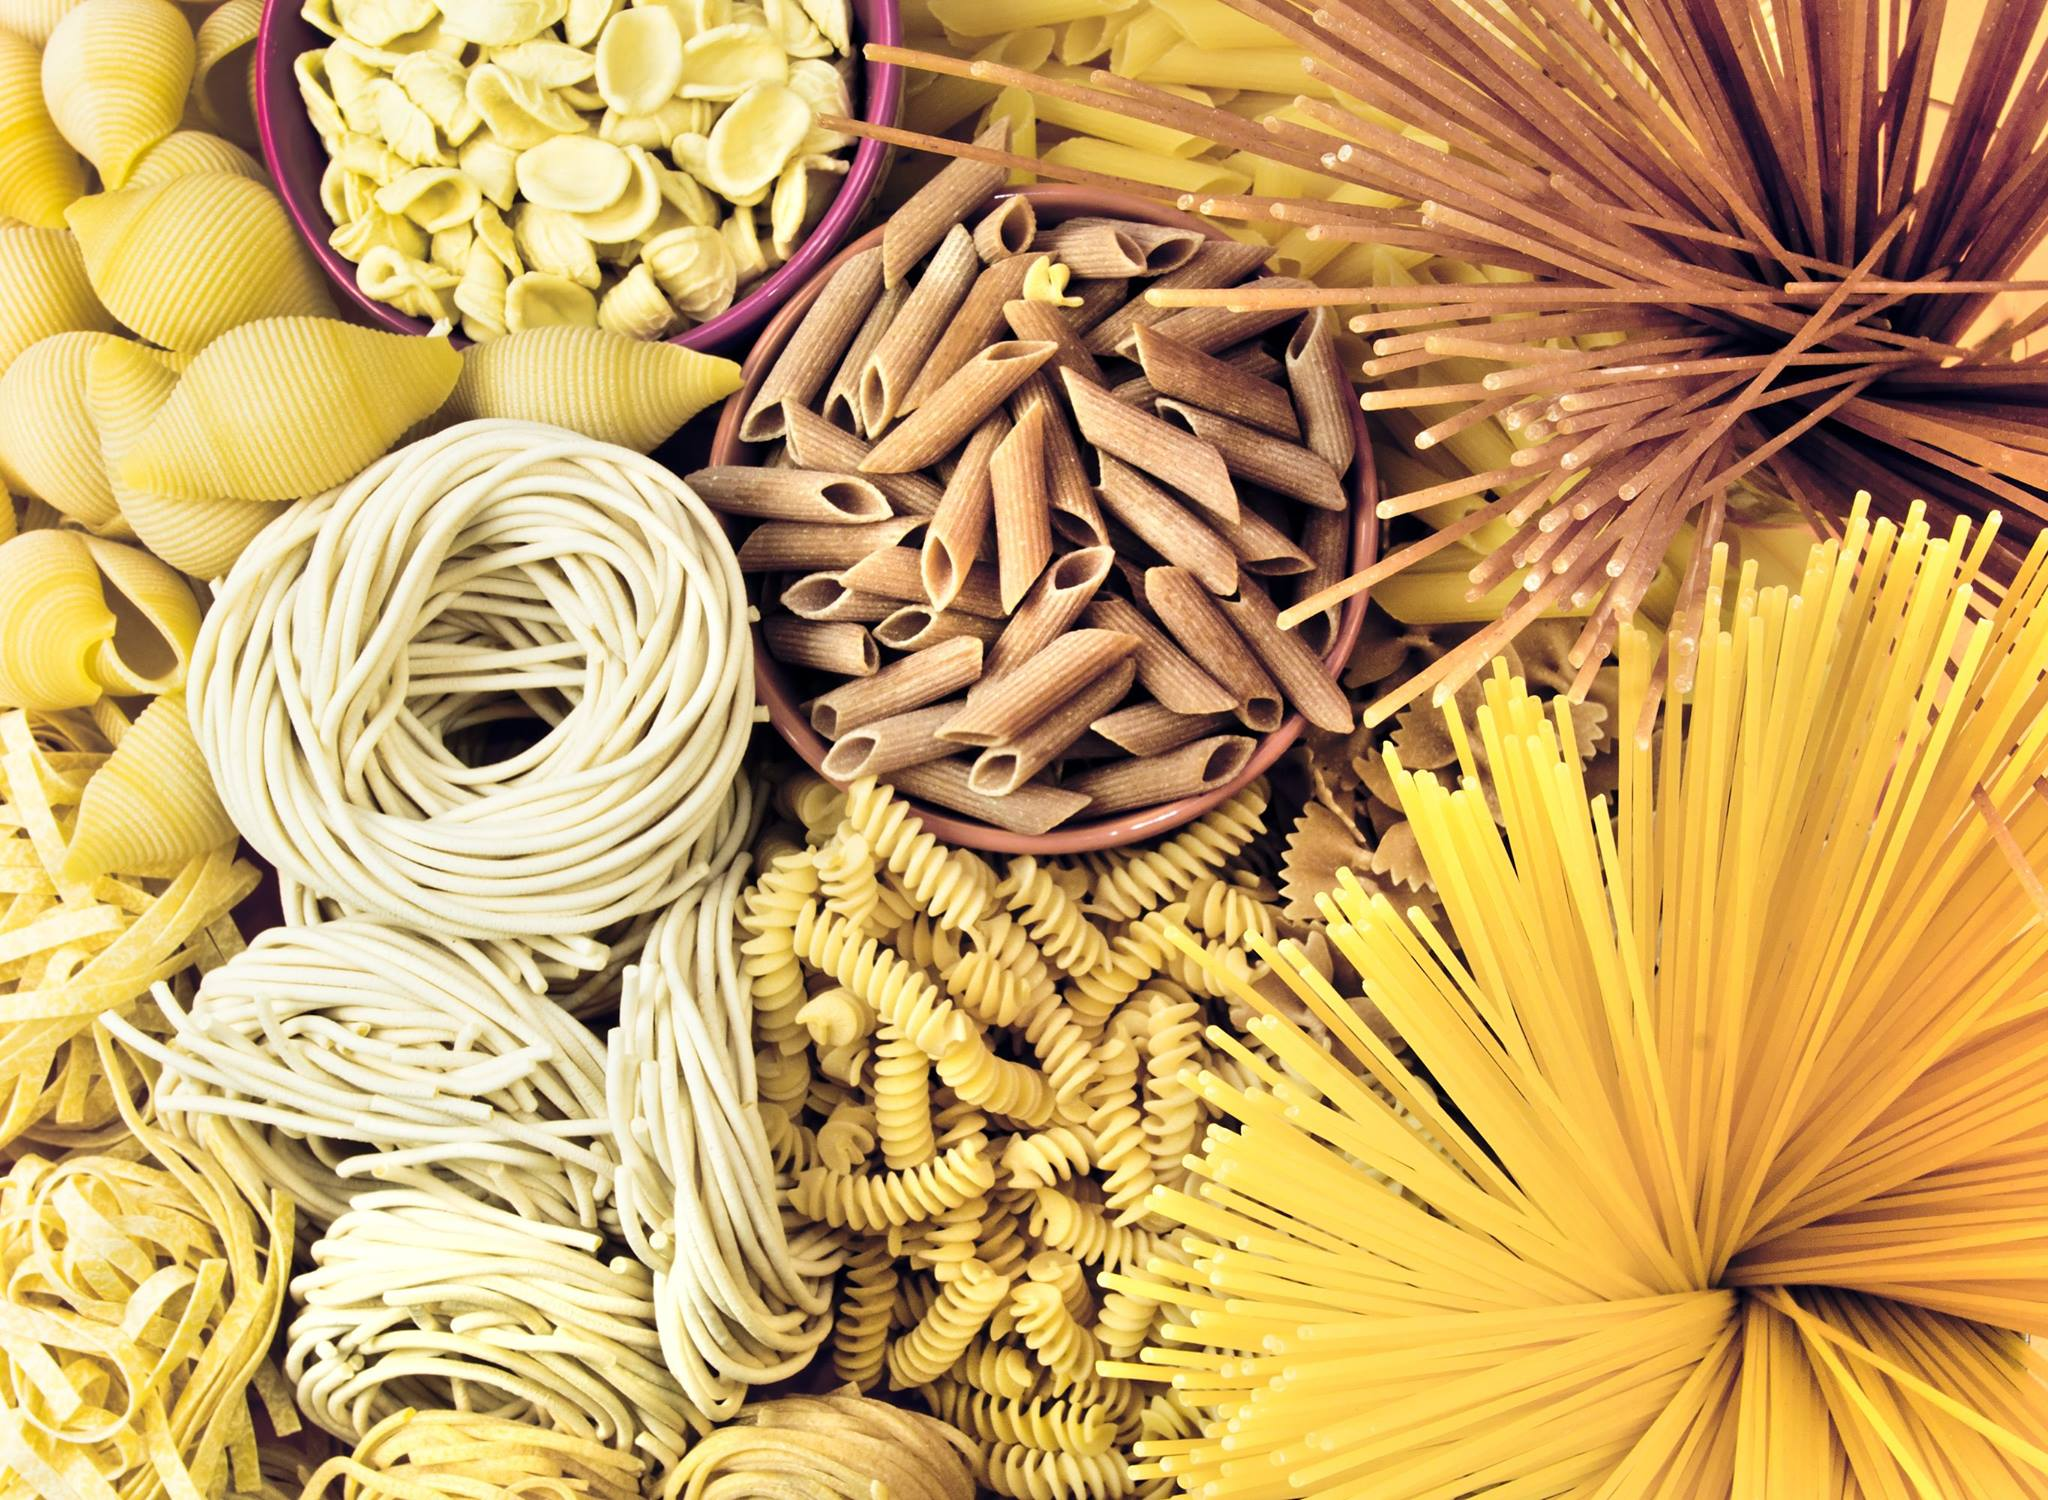 Assortment of uncooked pastas